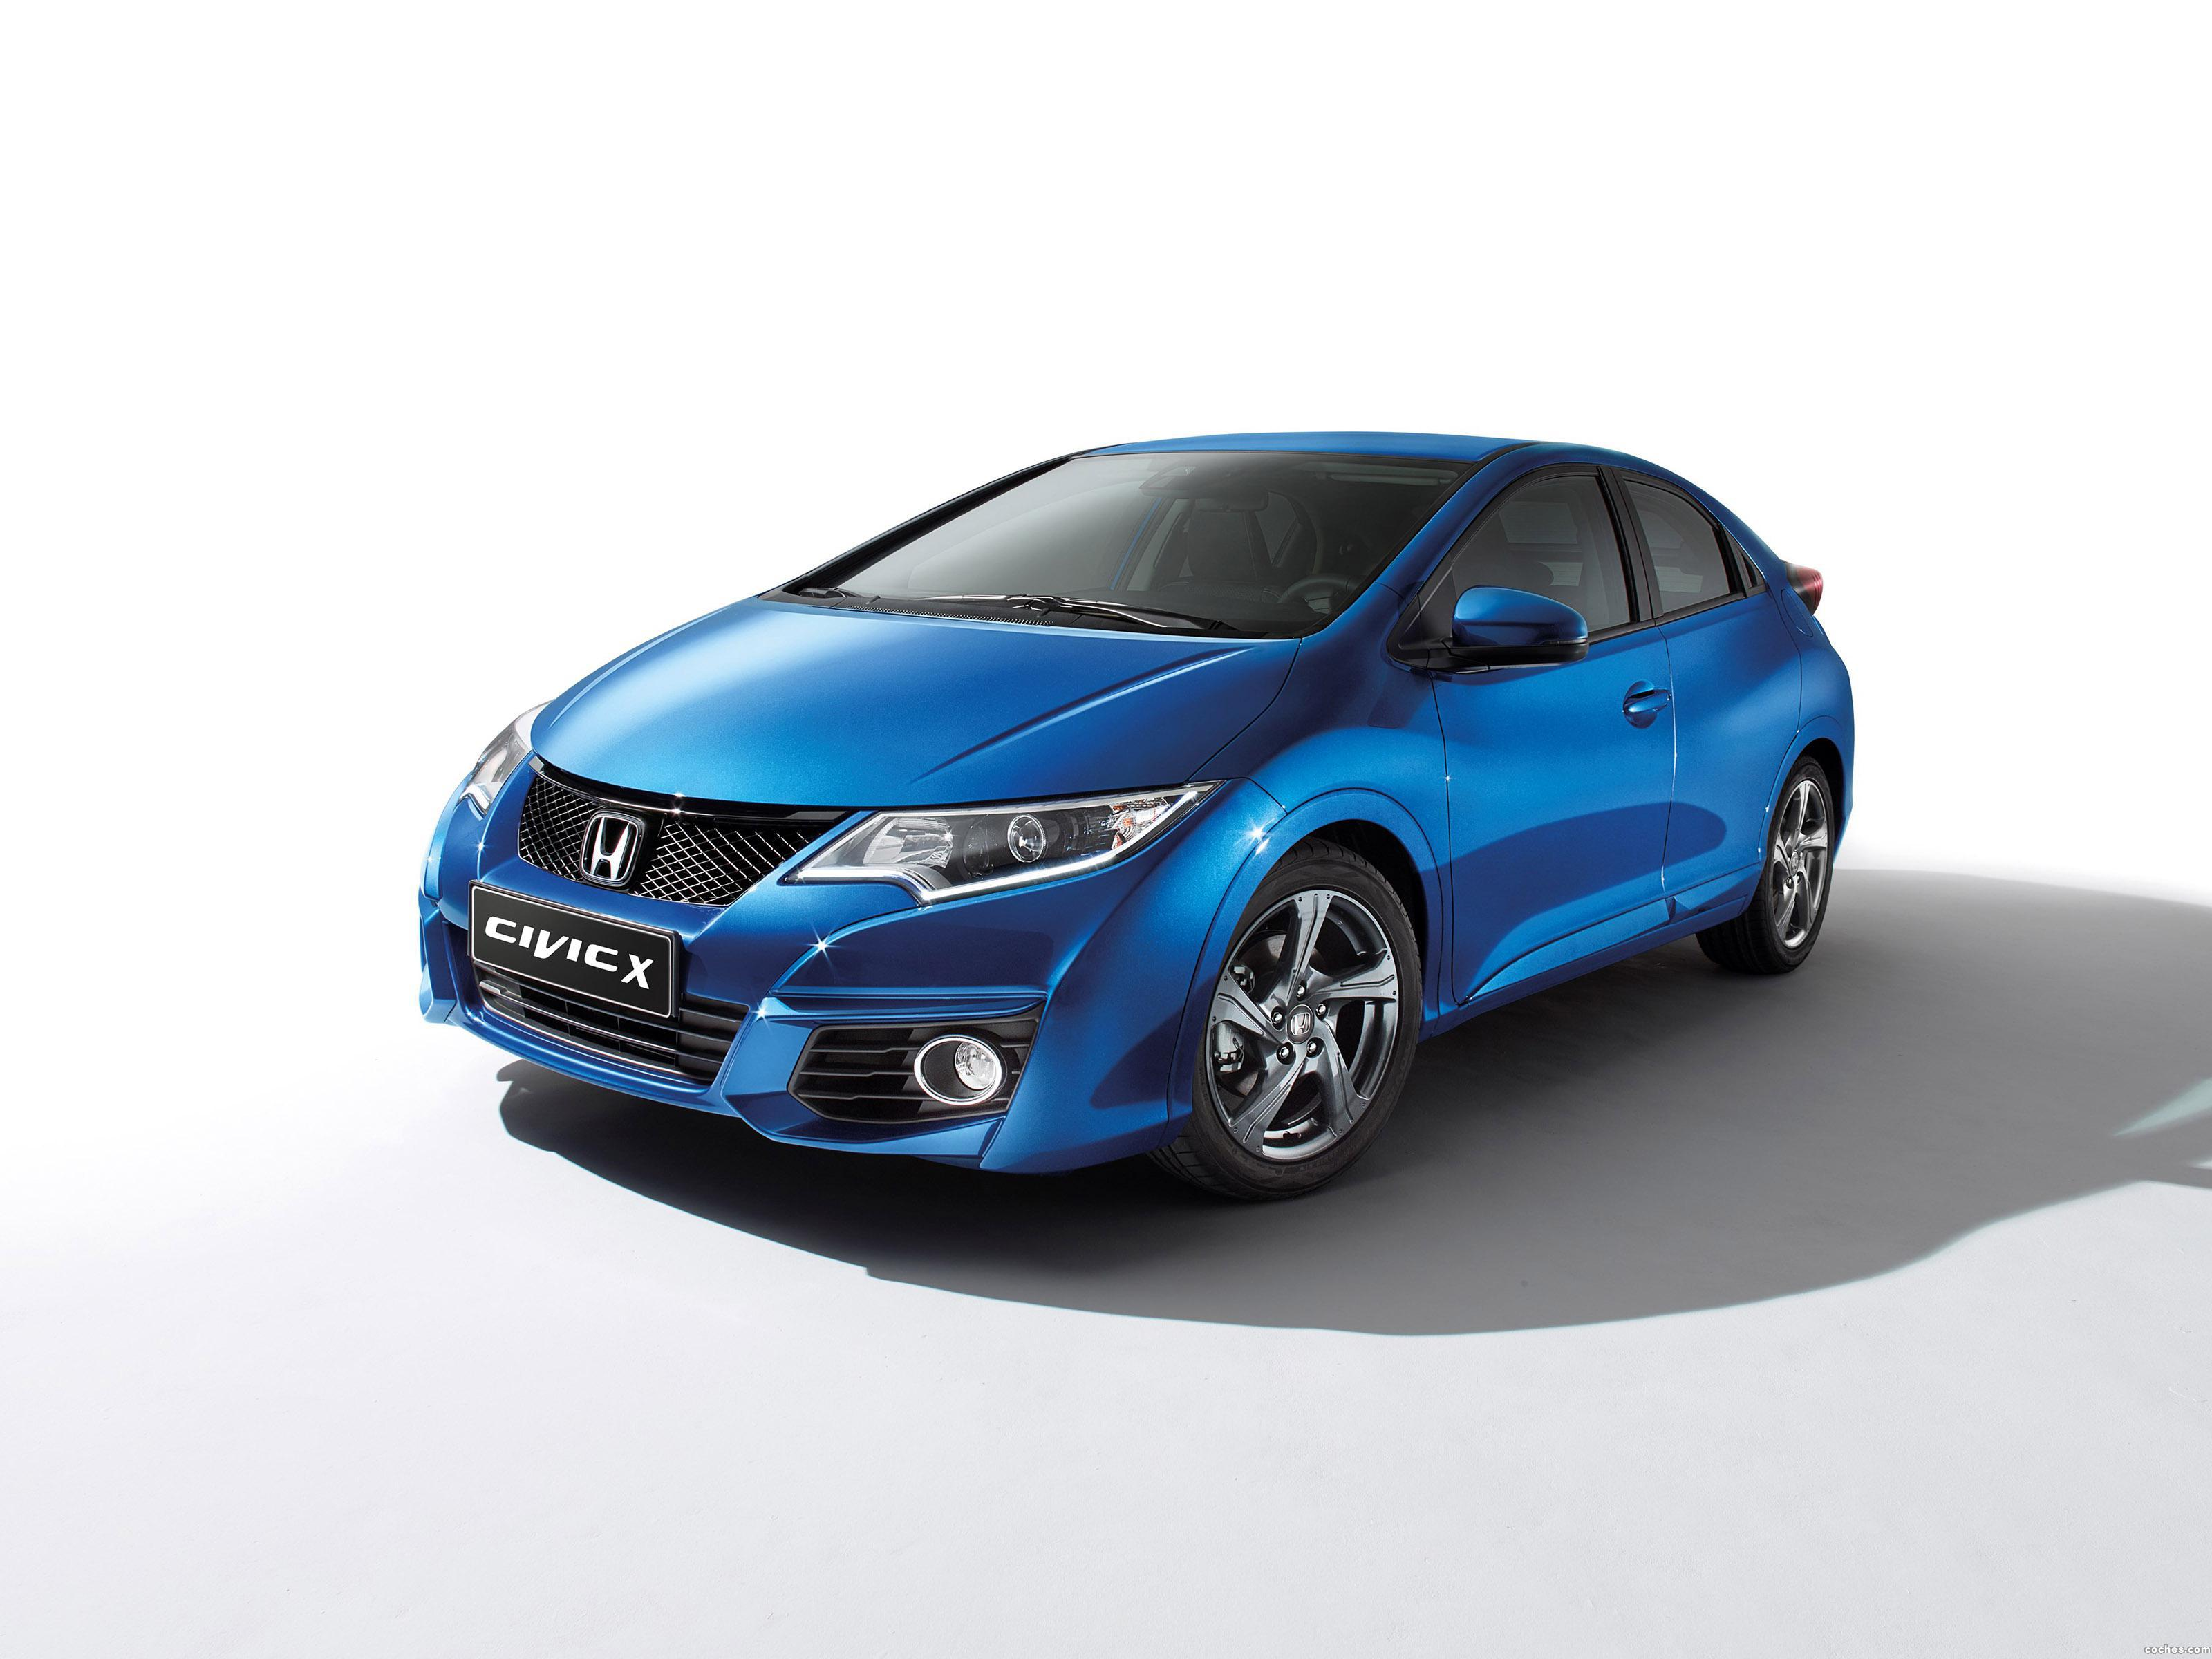 Foto 0 de Honda Civic X Edition 2016